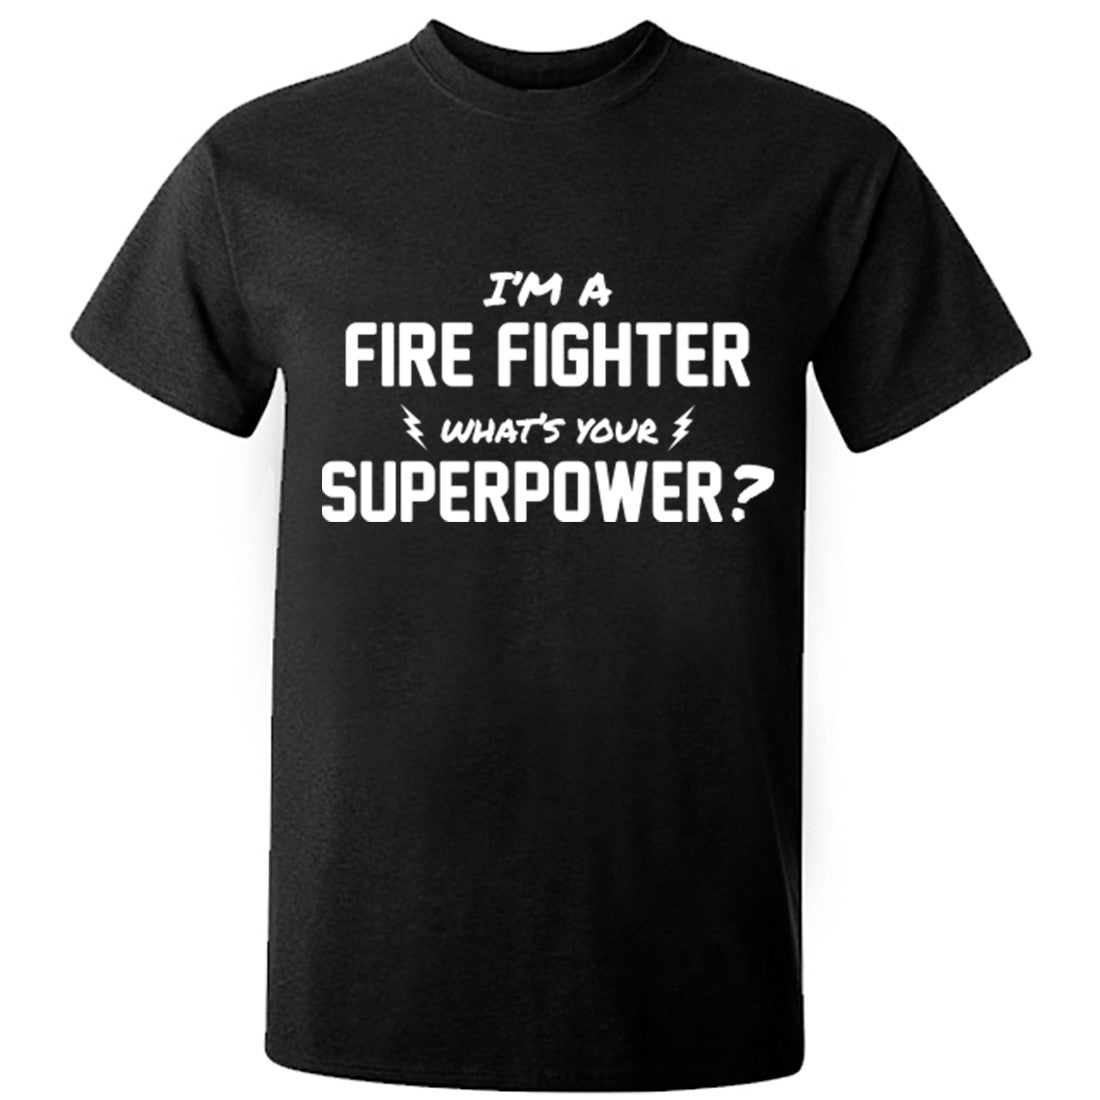 I'm A Firefighter What's Your Superpower? Unisex Fit T-Shirt K0724 - Illustrated Identity Ltd.